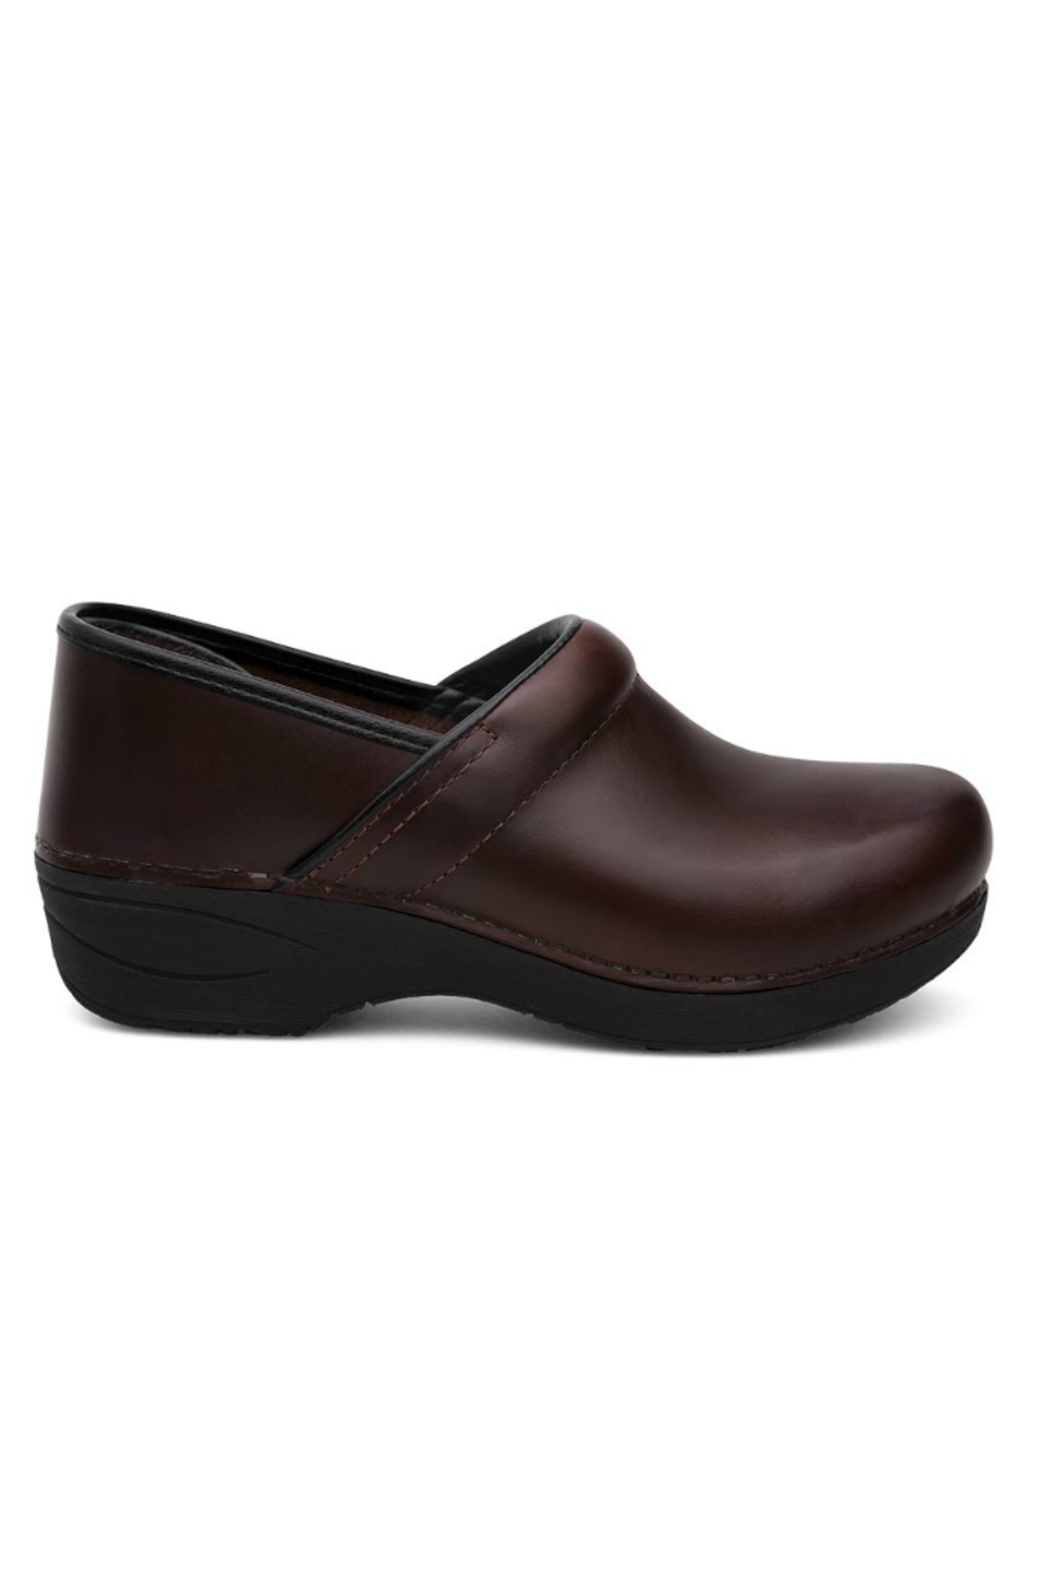 Dansko DANSKO PULL UP XP - Front Cropped Image